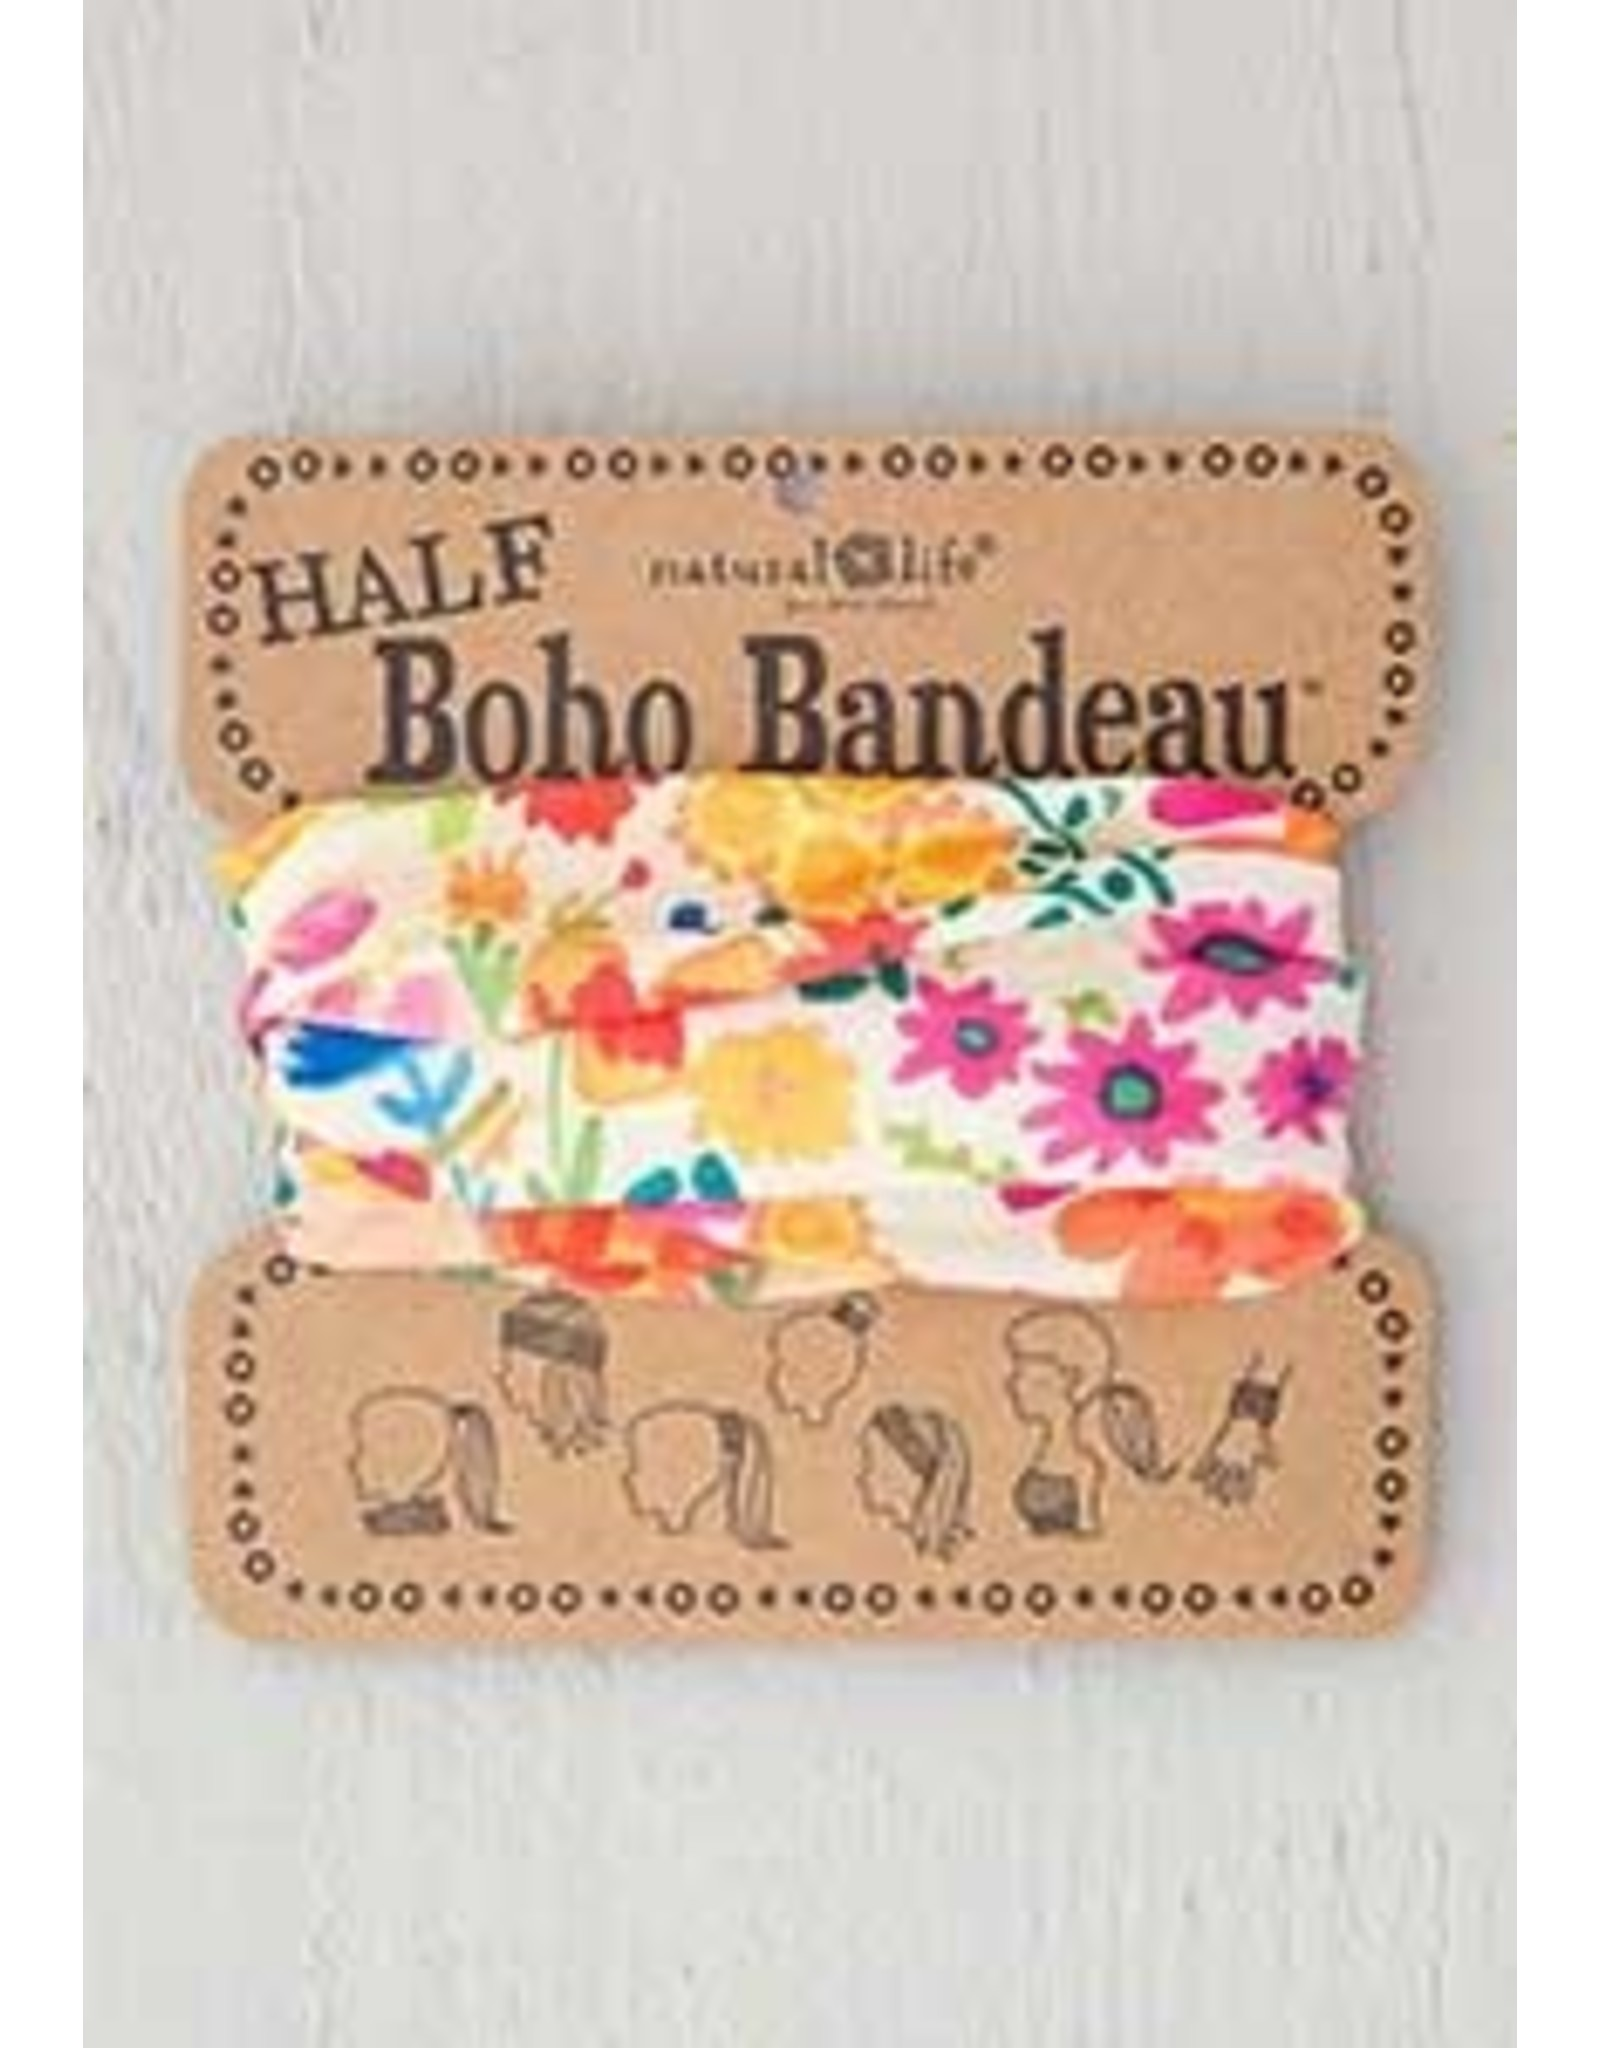 Natural LIfe Boho Bandeau, Cream Wildflower